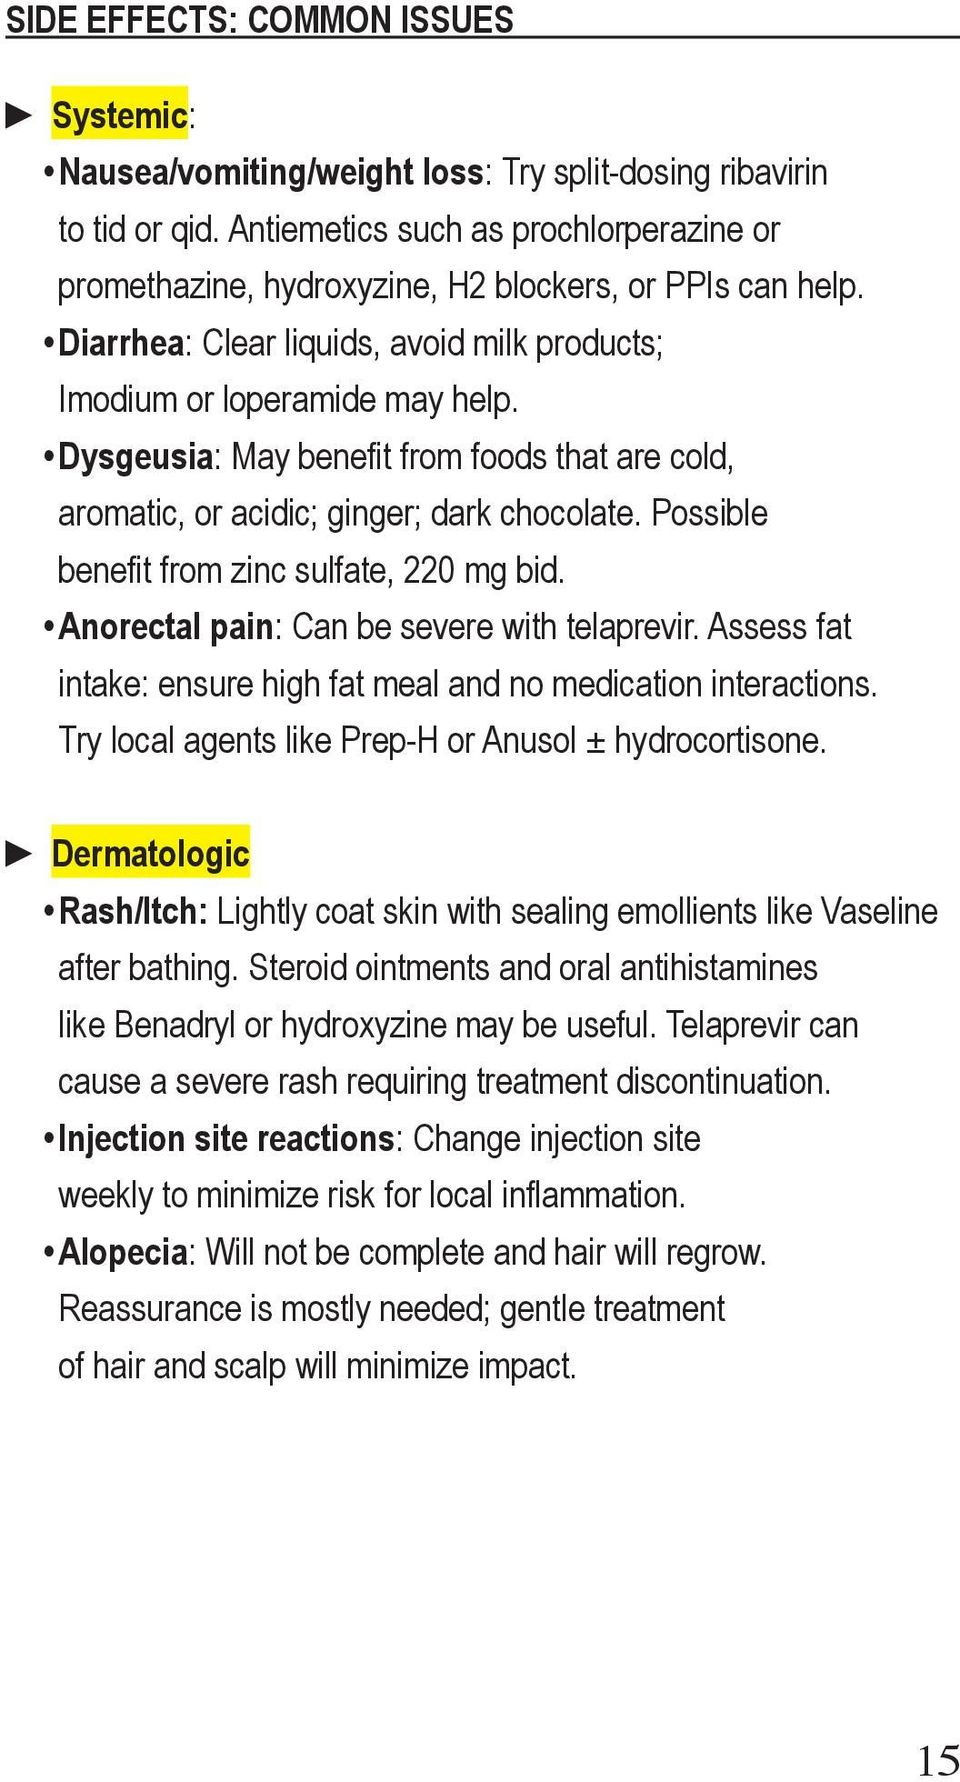 Dysgeusia: May benefit from foods that are cold, aromatic, or acidic; ginger; dark chocolate. Possible benefit from zinc sulfate, 220 mg bid. Anorectal pain: Can be severe with telaprevir.